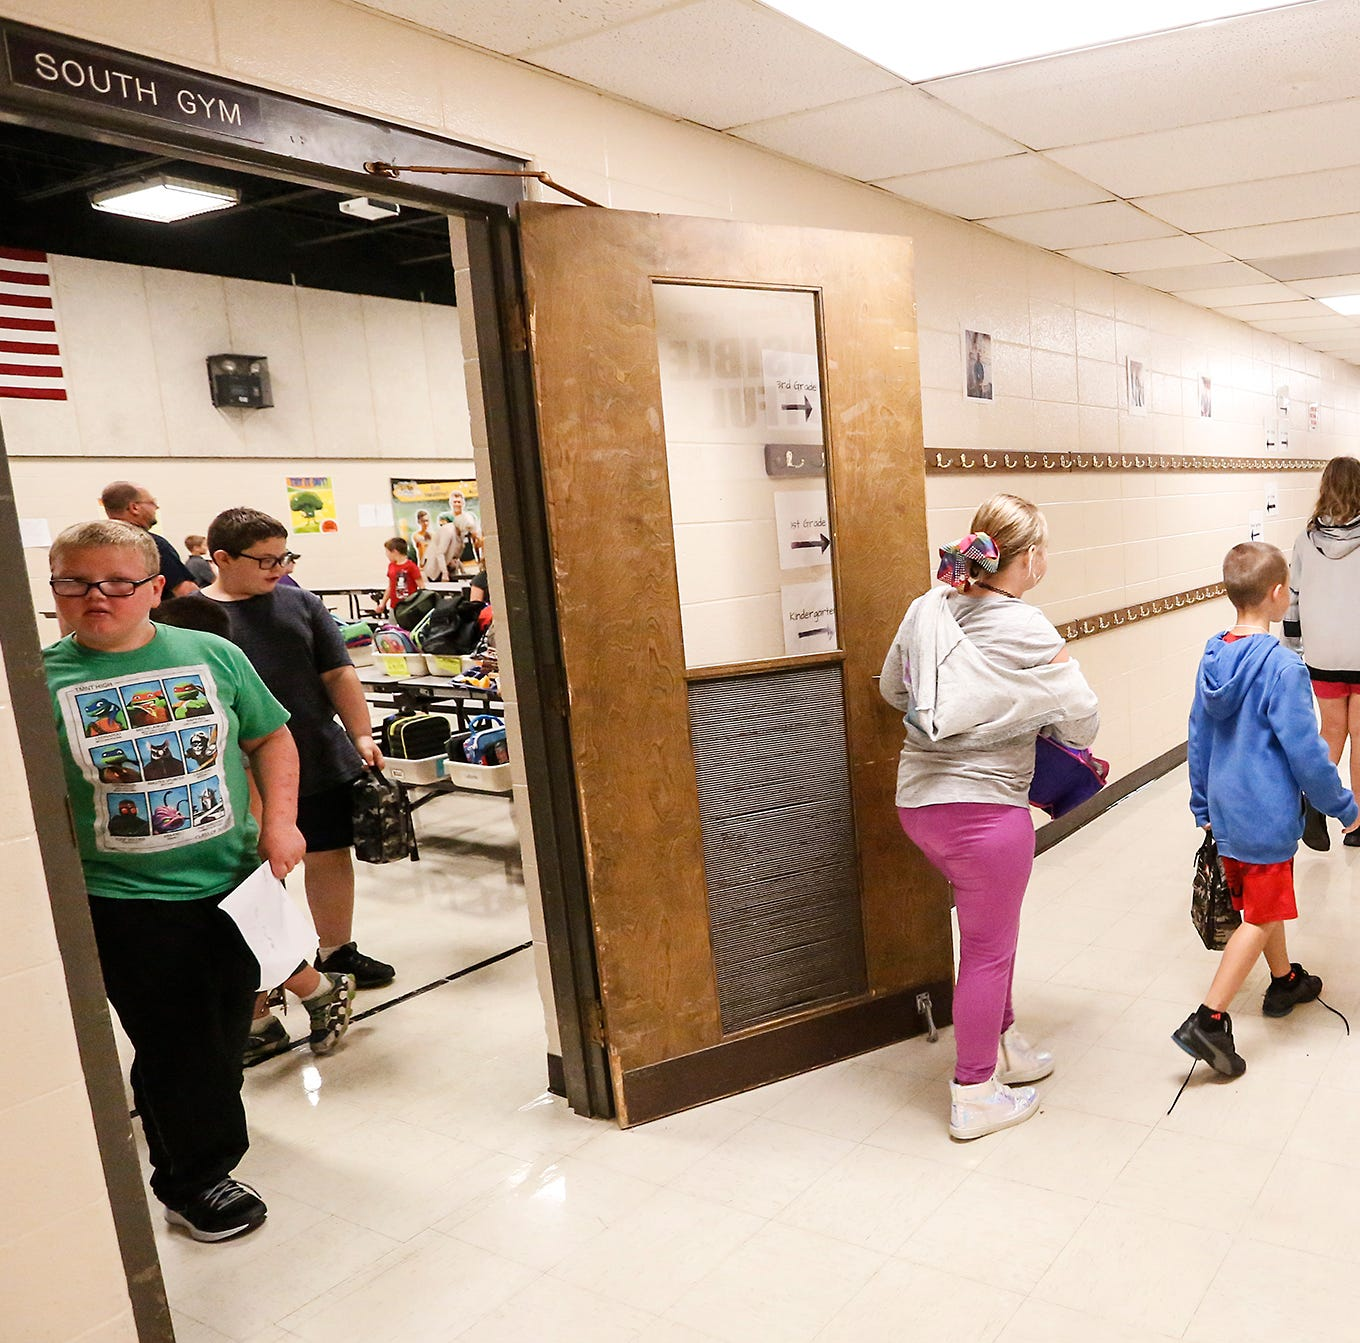 Fond du Lac School Board asks community to weigh in on needs, possible April referendum